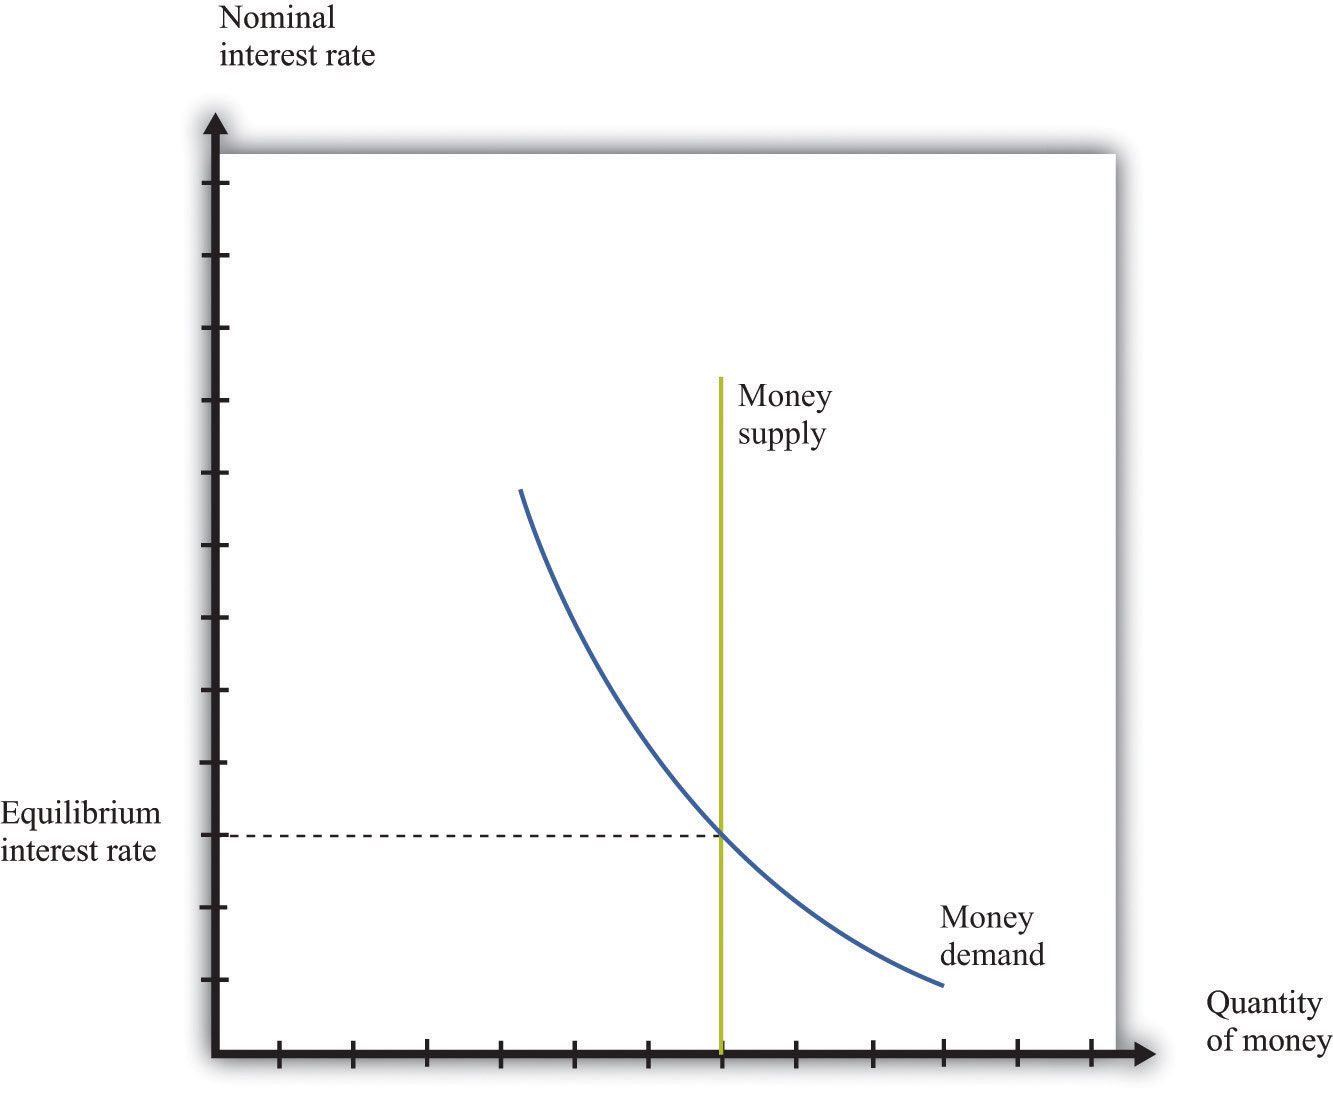 lm curve In both cases, exogenous shocks/events can lead to changes in liquidity preference and demand for savings, which in turn can shift the lm or is curves respectively.